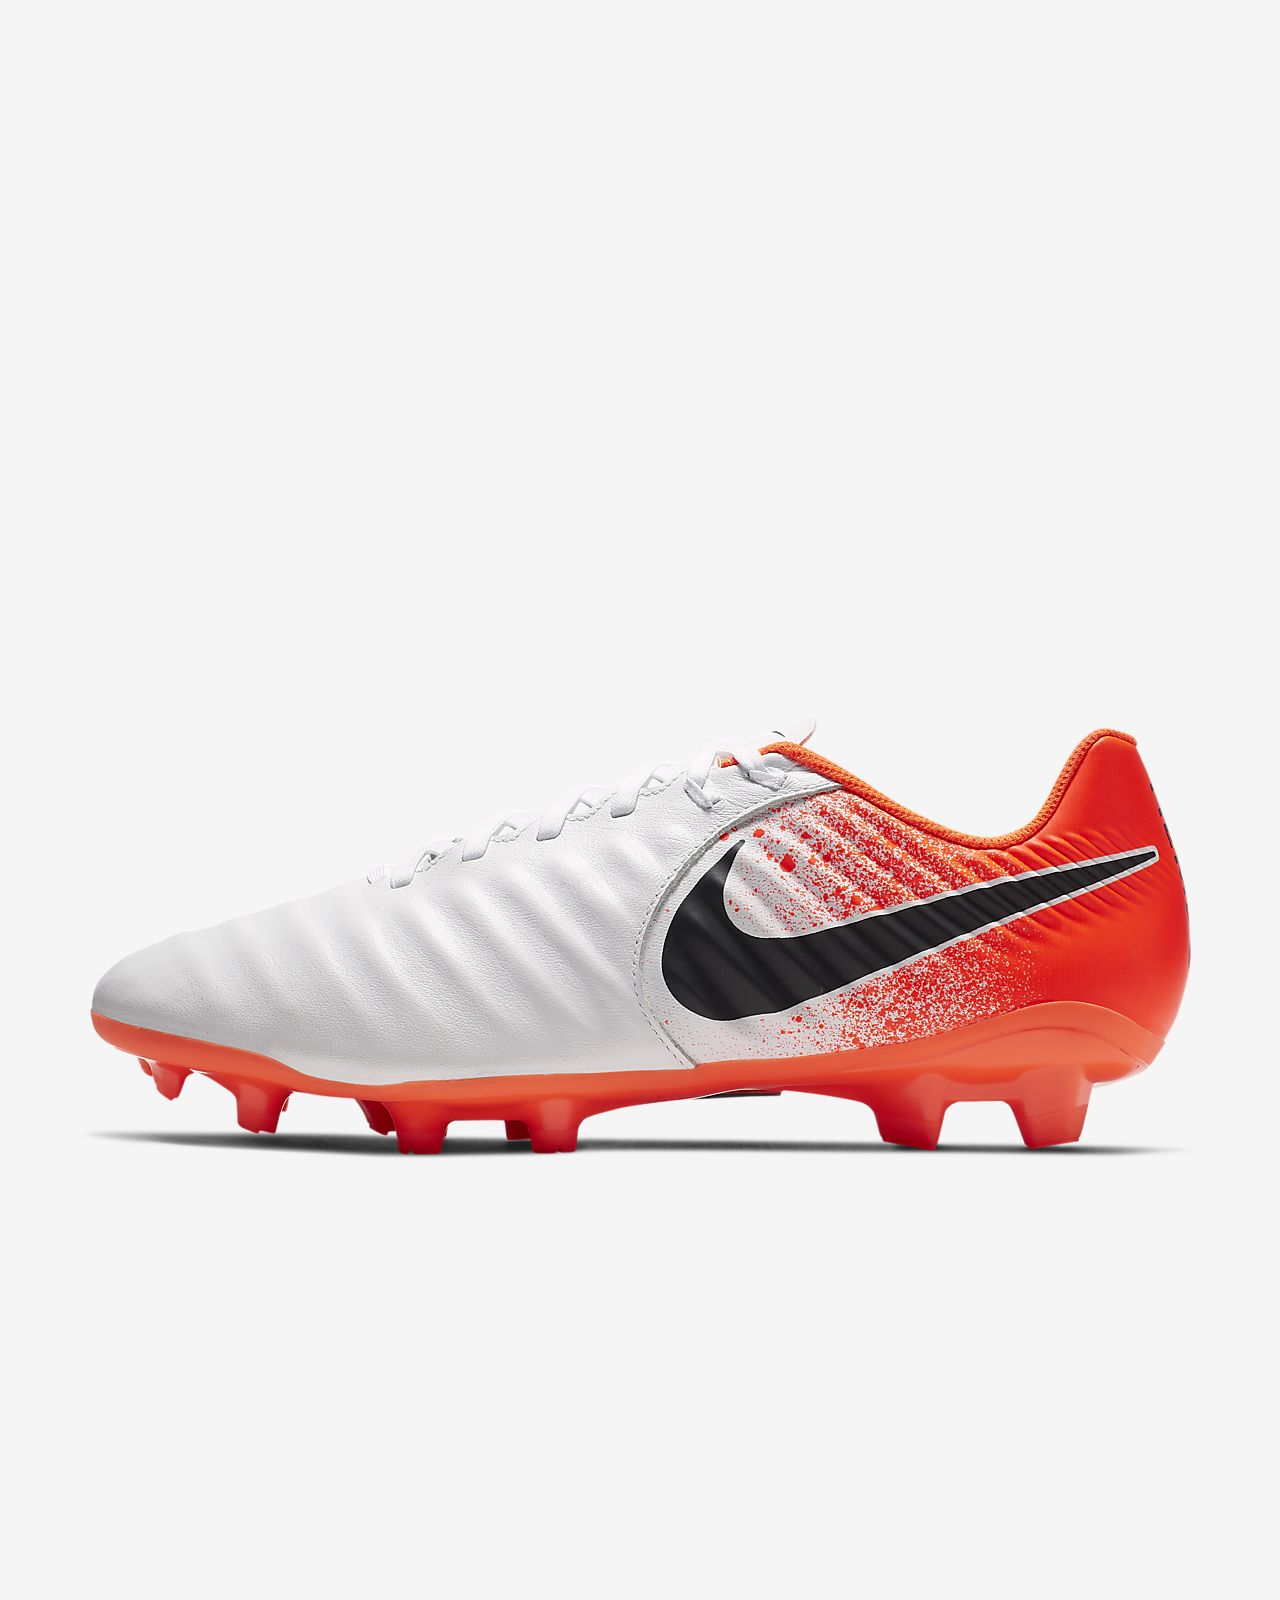 Nike Tiempo Legend VII Academy Firm-Ground Soccer Cleat